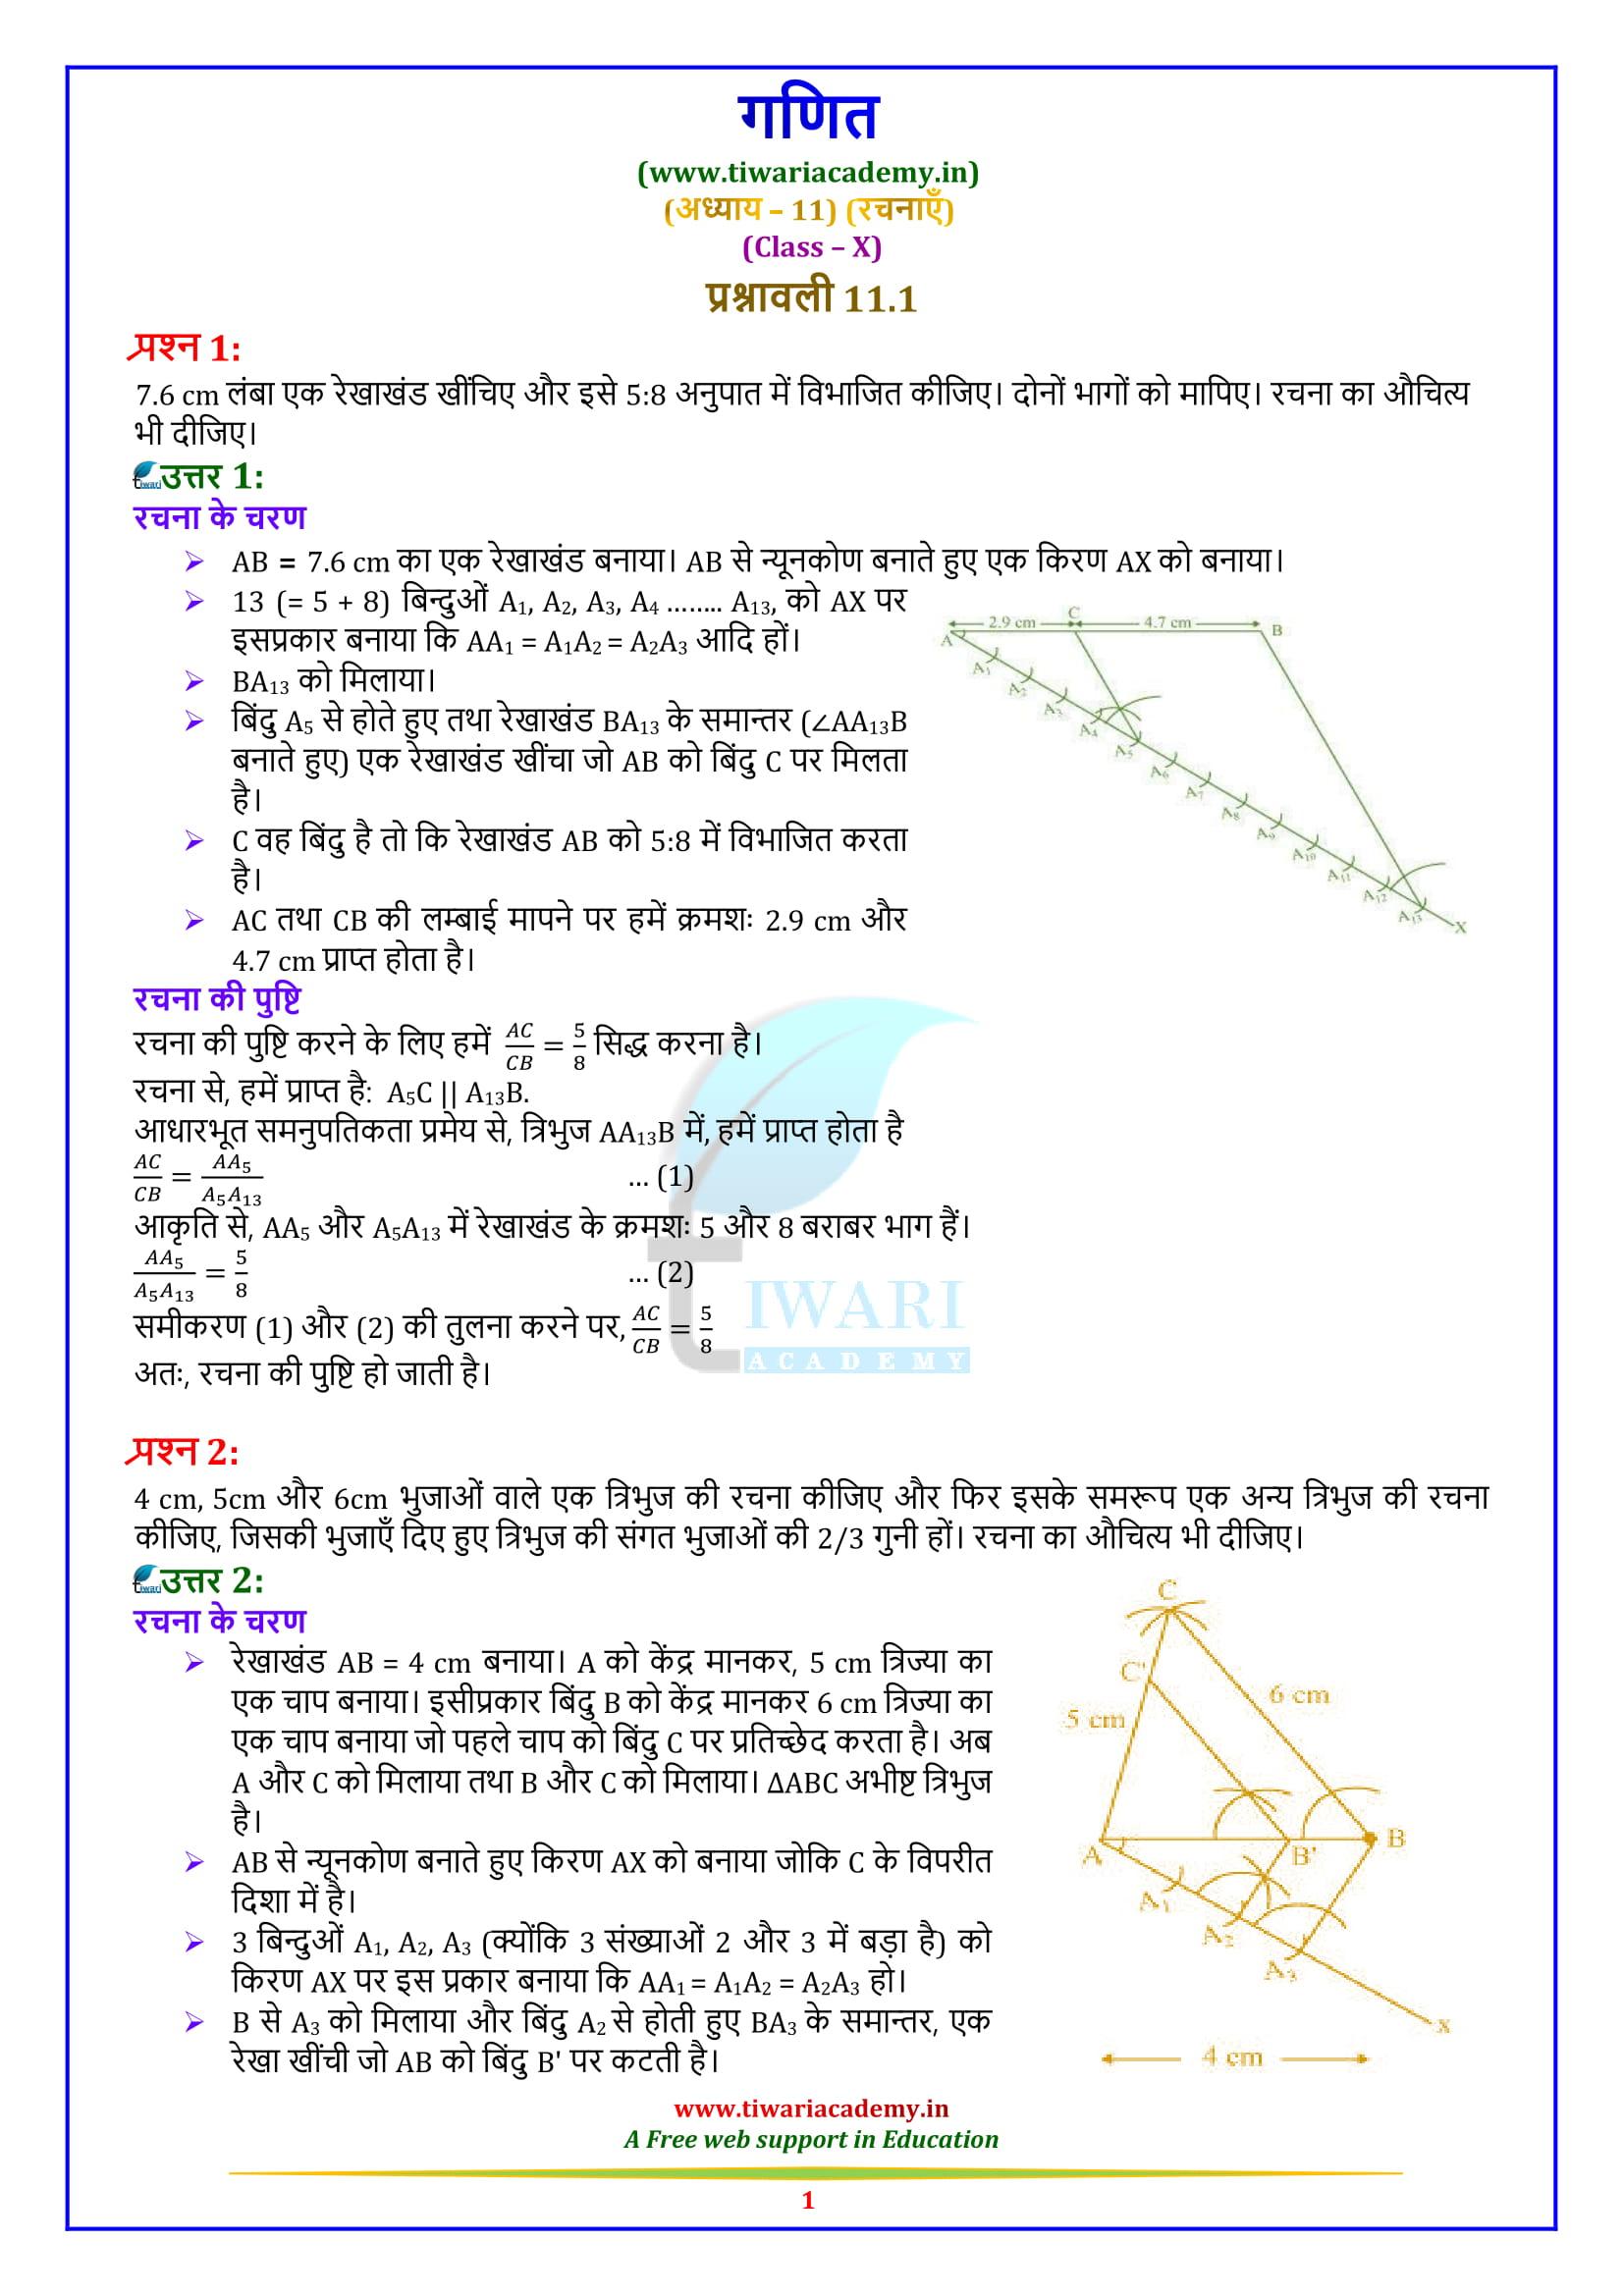 Class 10 Maths Exercise 11.1 solutions in hindi medium